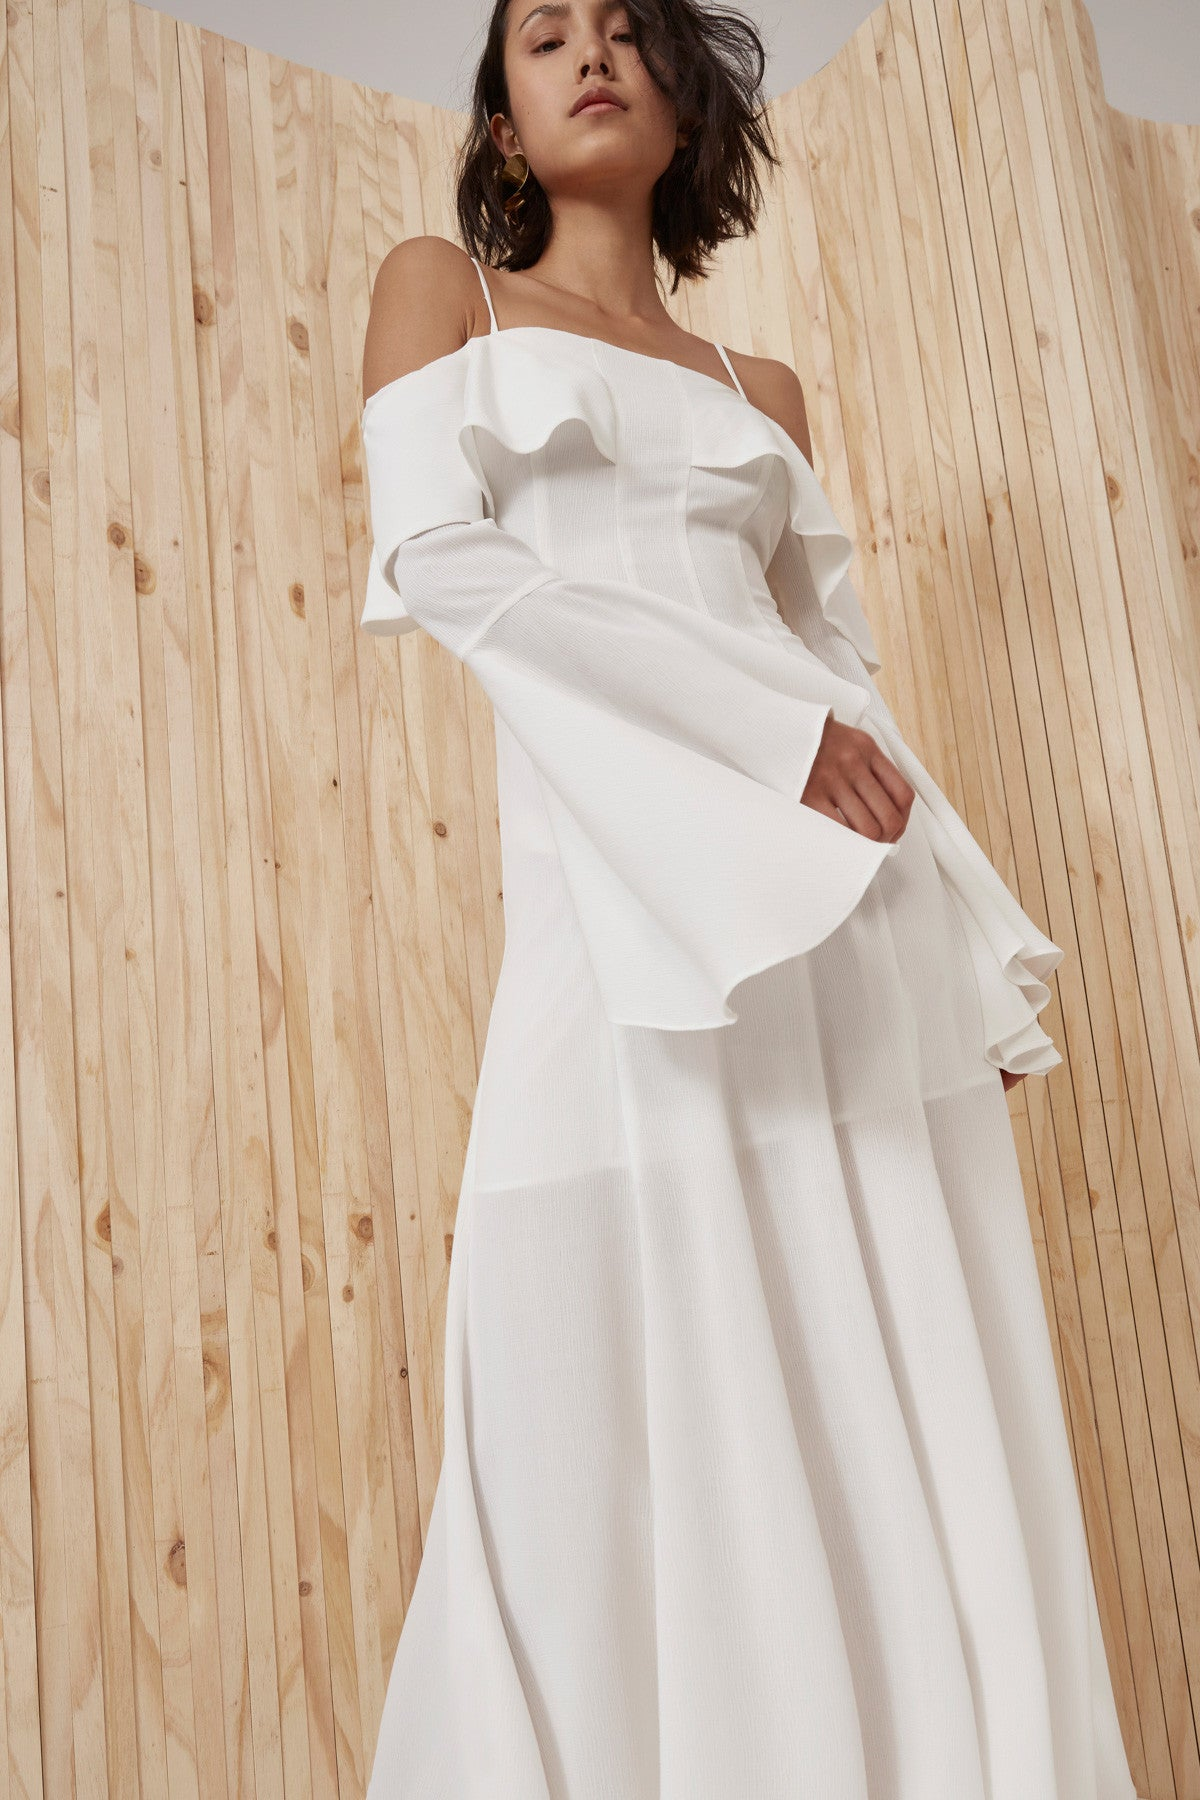 COMPOSE FULL LENGTH DRESS ivory